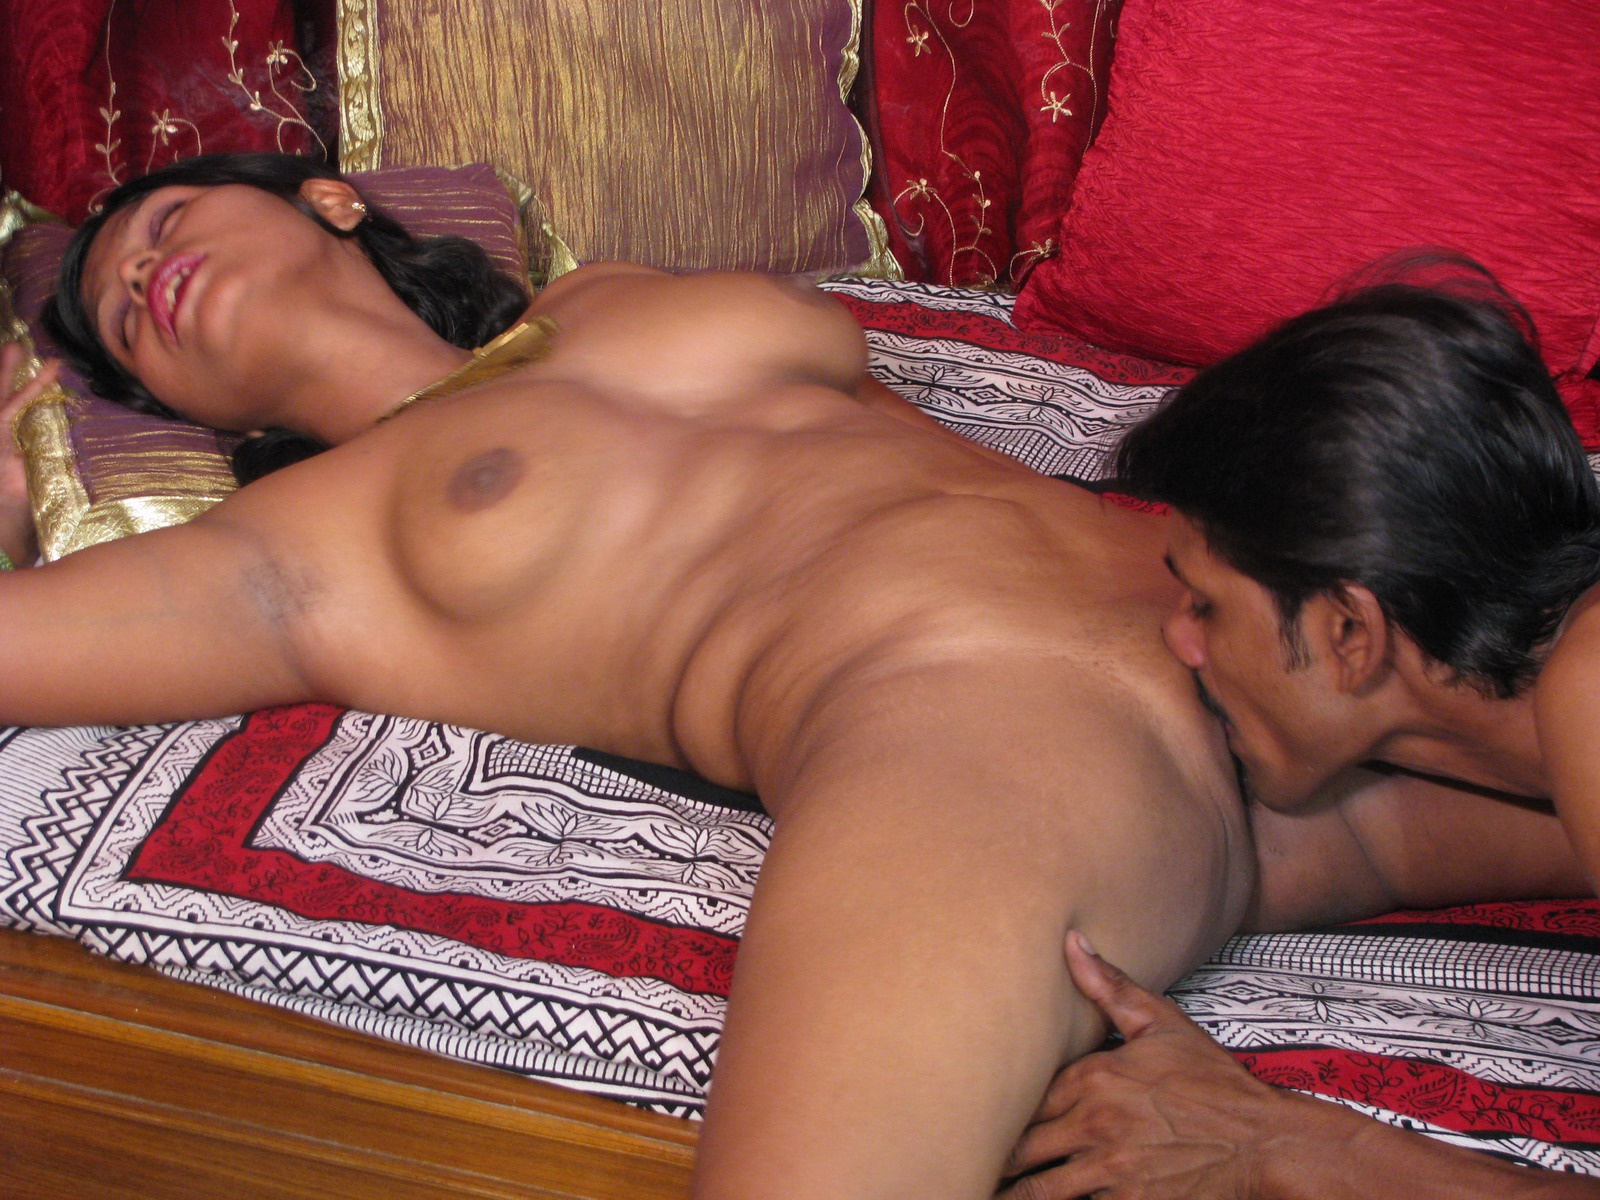 Naked girls in beed